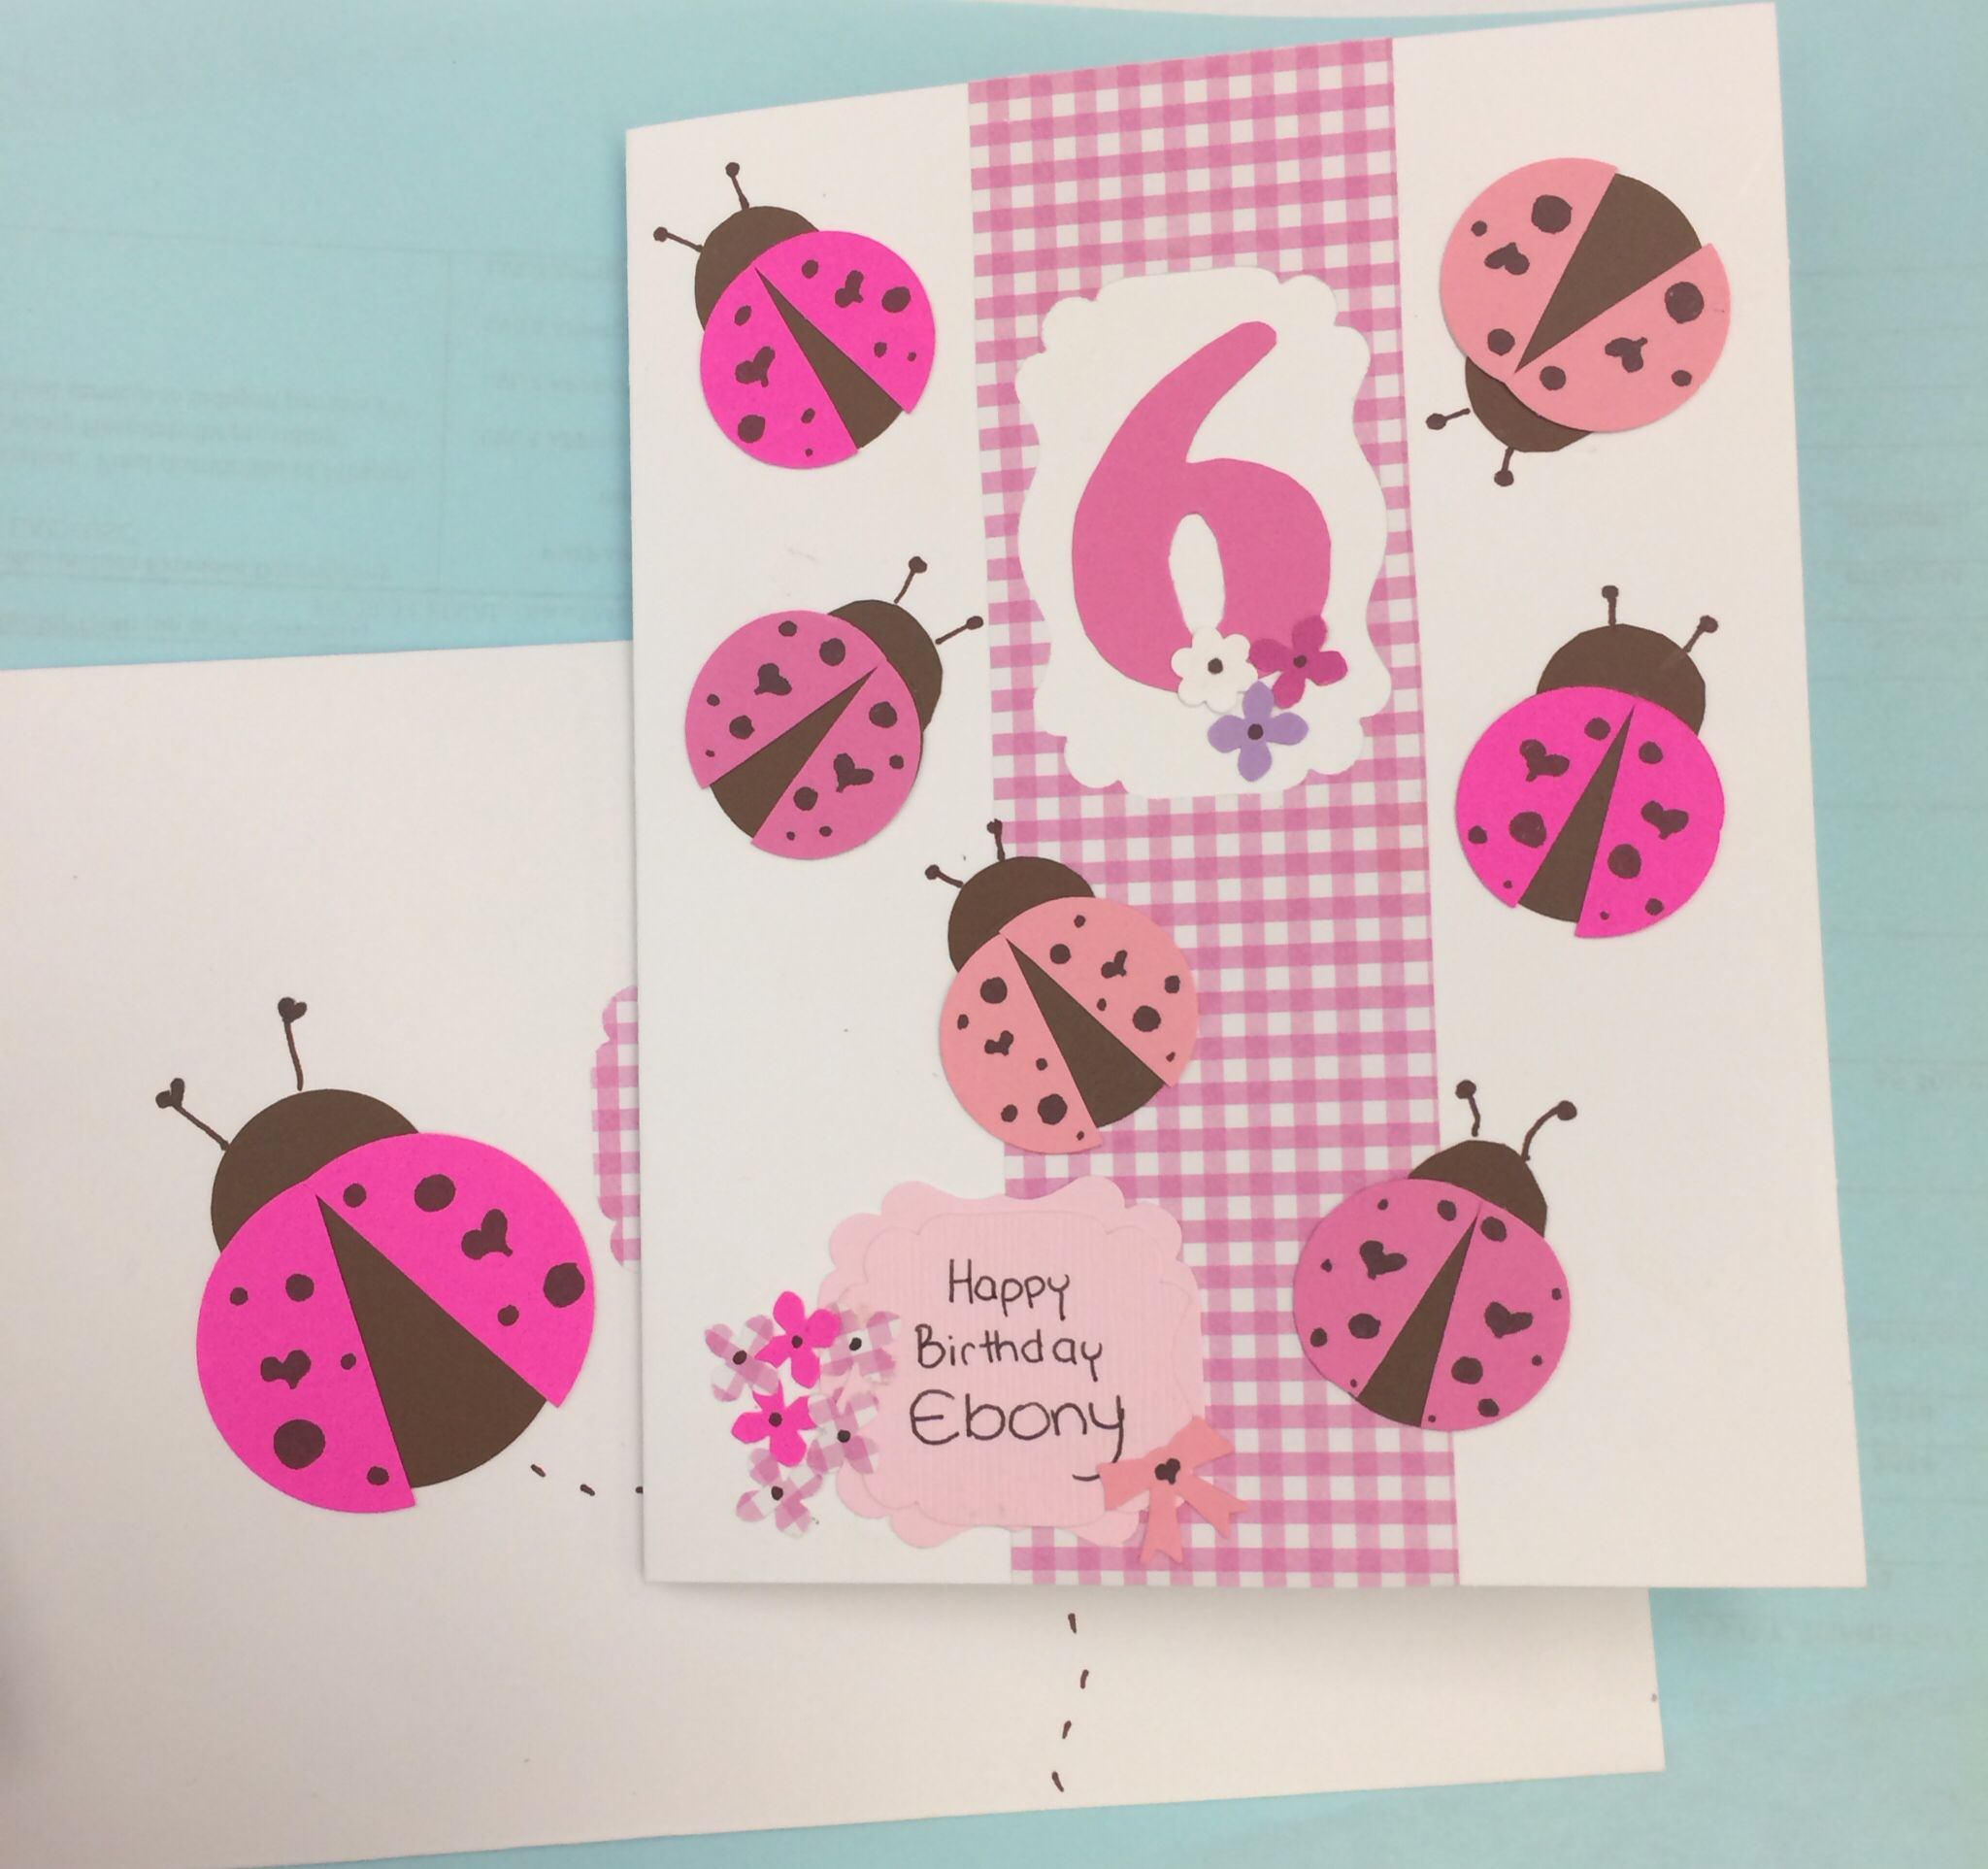 6 Years Old Bithday Card For A Girl Cute Ladybugs Pink And Brown